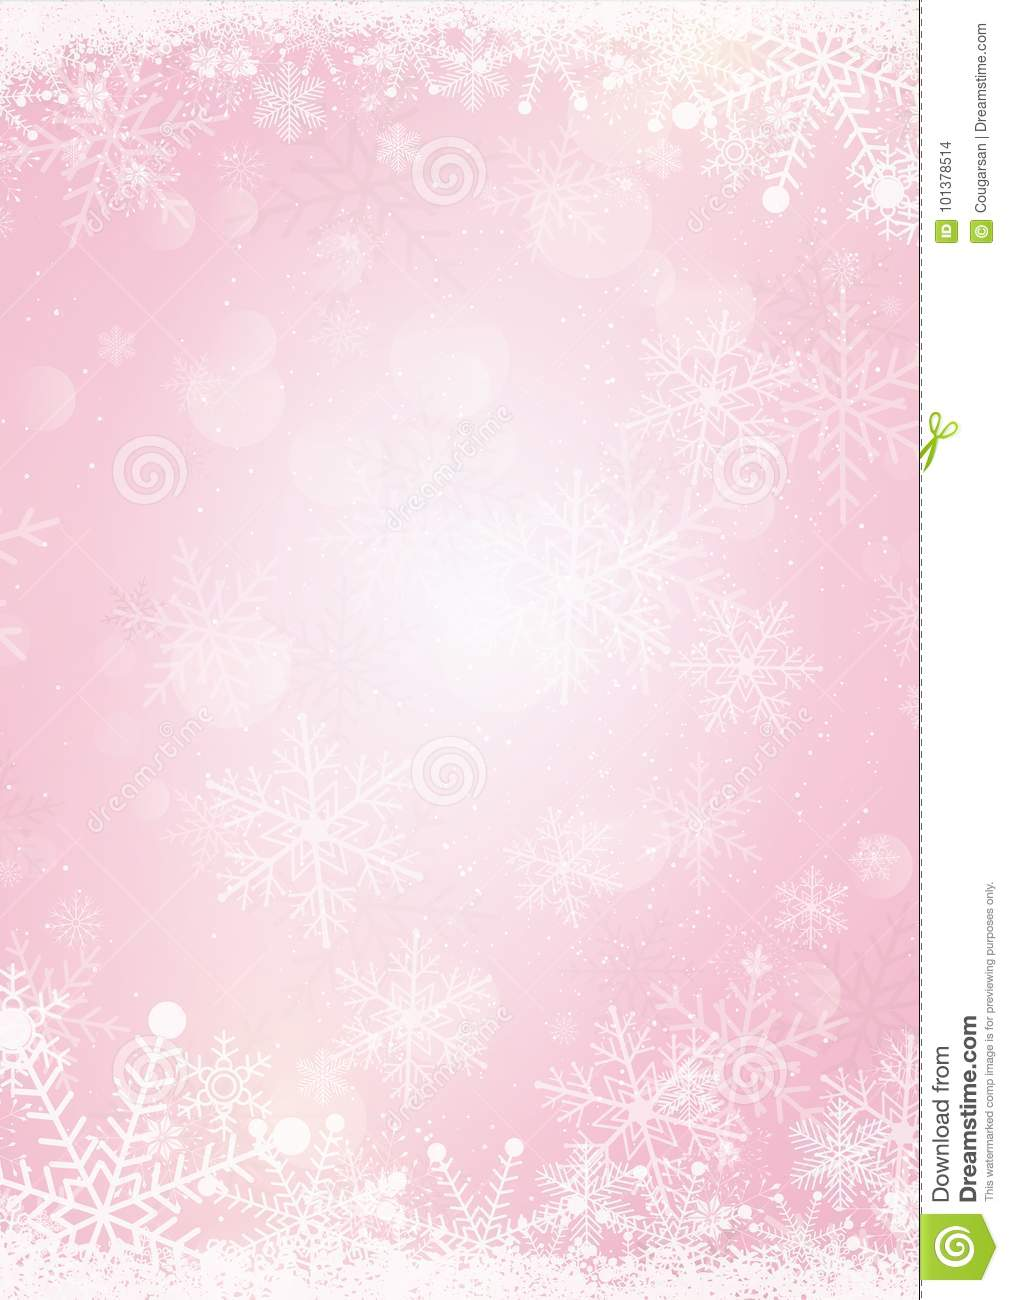 pastel pink winter snow holiday paper background stock